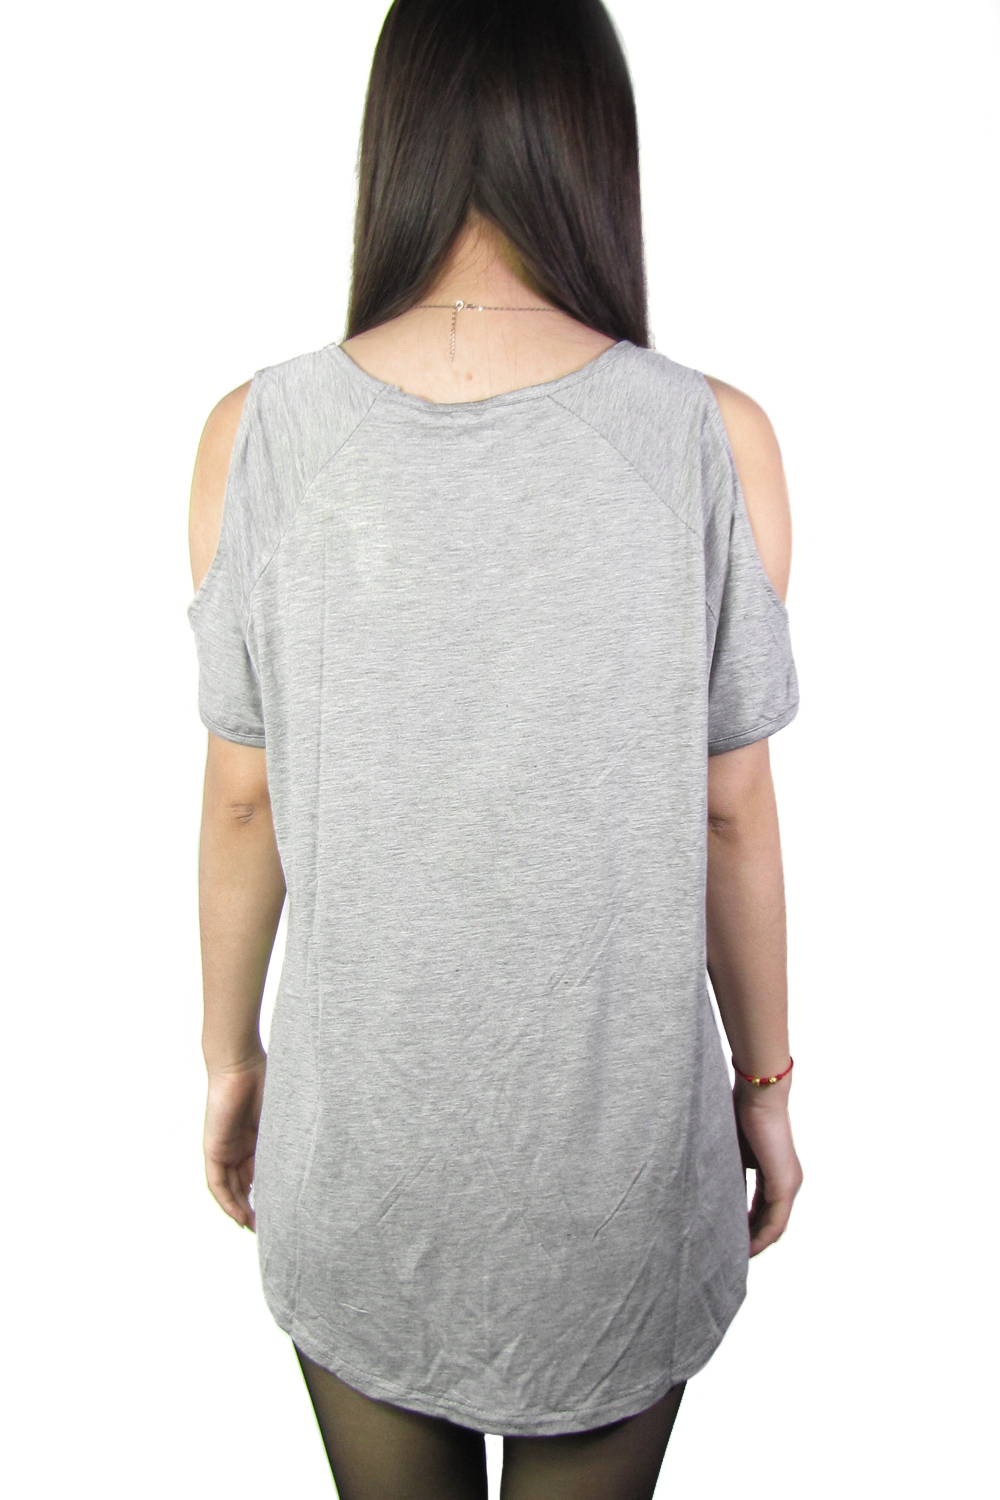 b936fbd869b Sexy Trendy Off Shoulder Women Shirt Thin Cool Blouse Tops for Women  Comfortable Cotton Material-in Blouses   Shirts from Women s Clothing on  Aliexpress.com ...